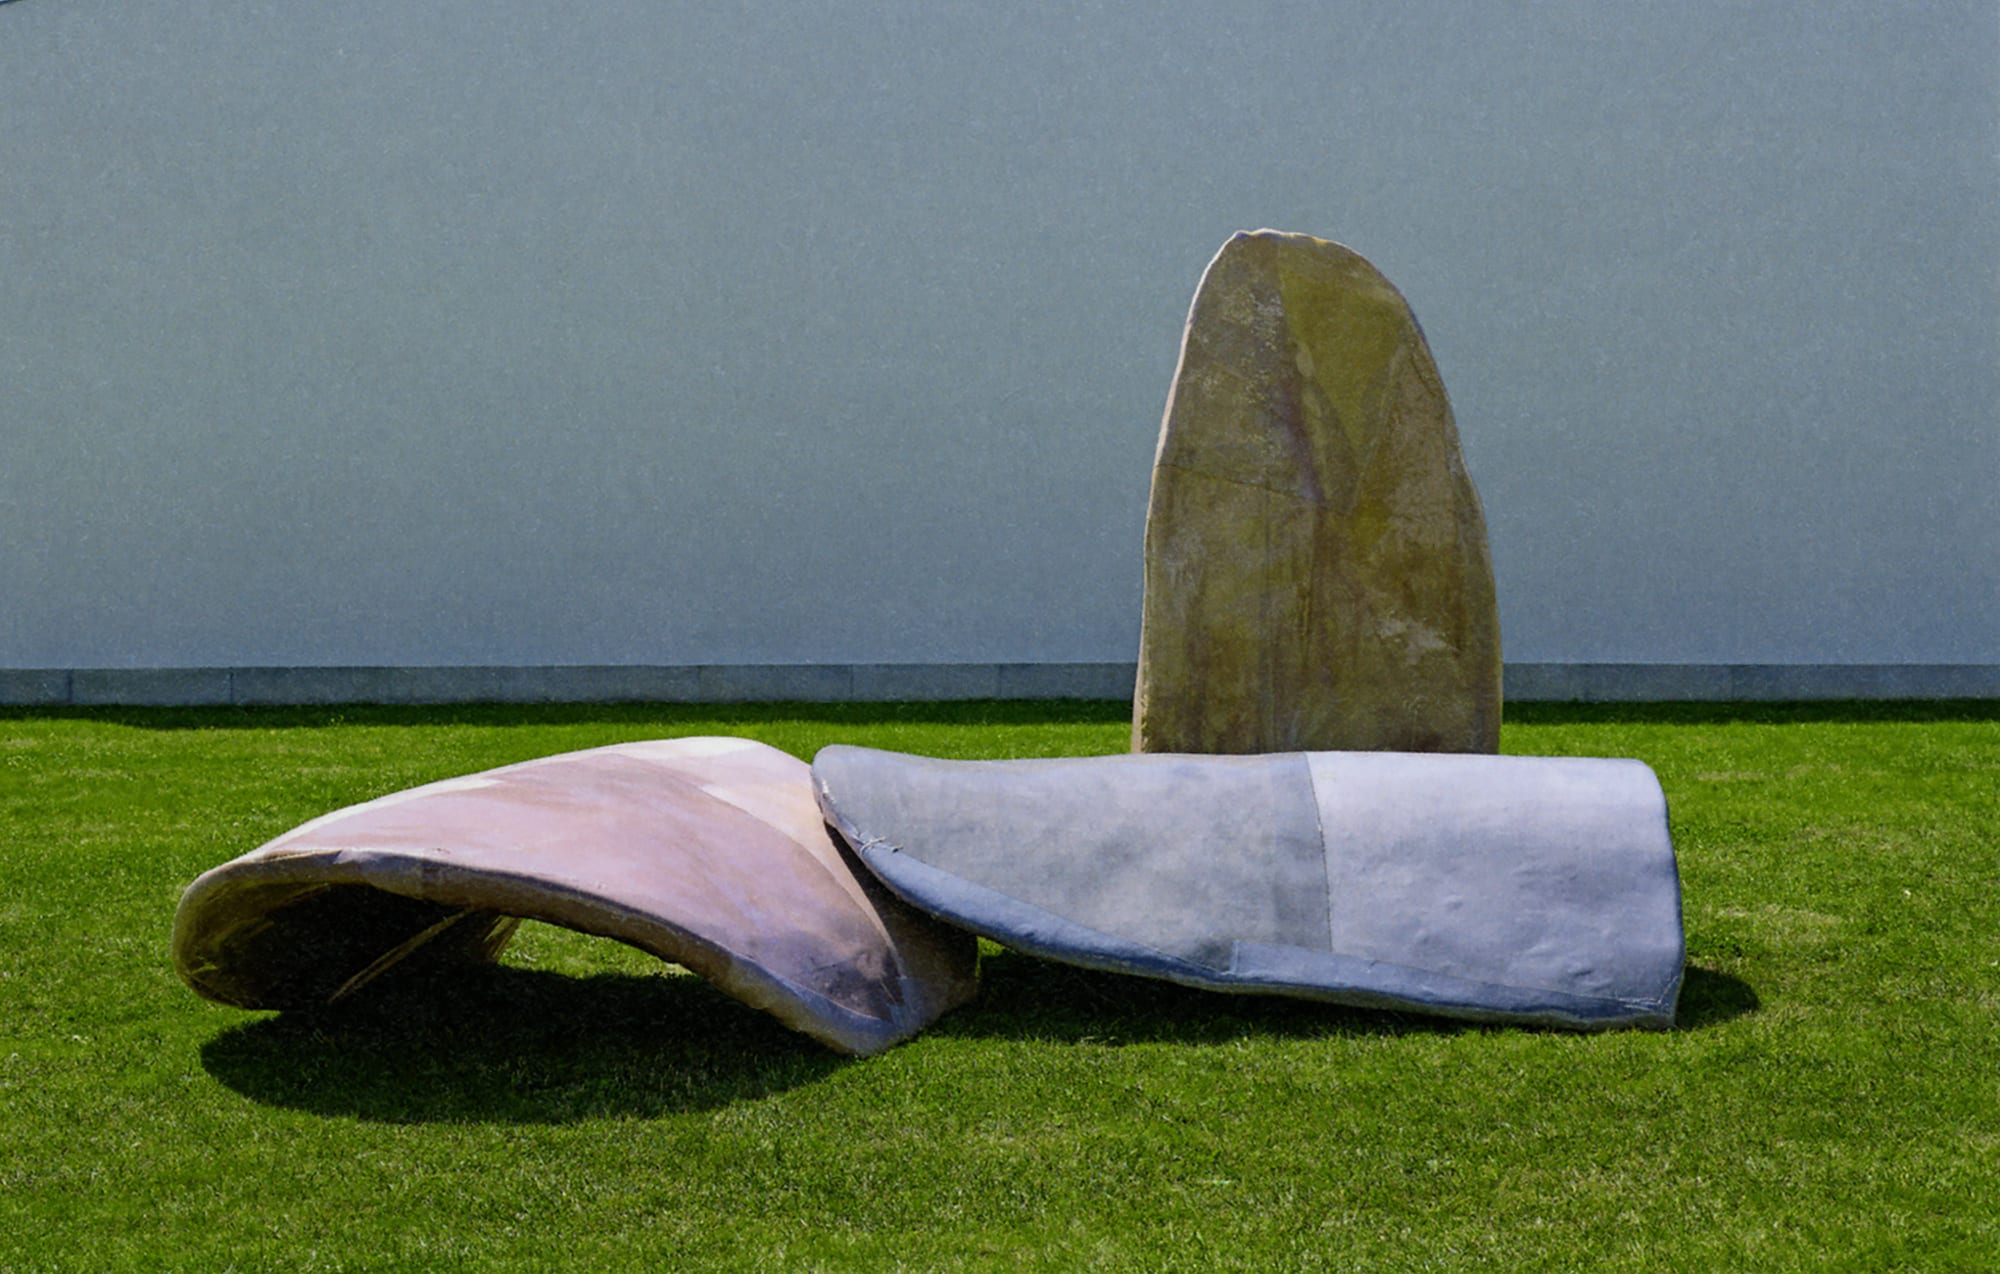 Outdoor installation of three large abstract sculptures in red, blue and yellow on a grass lawn.